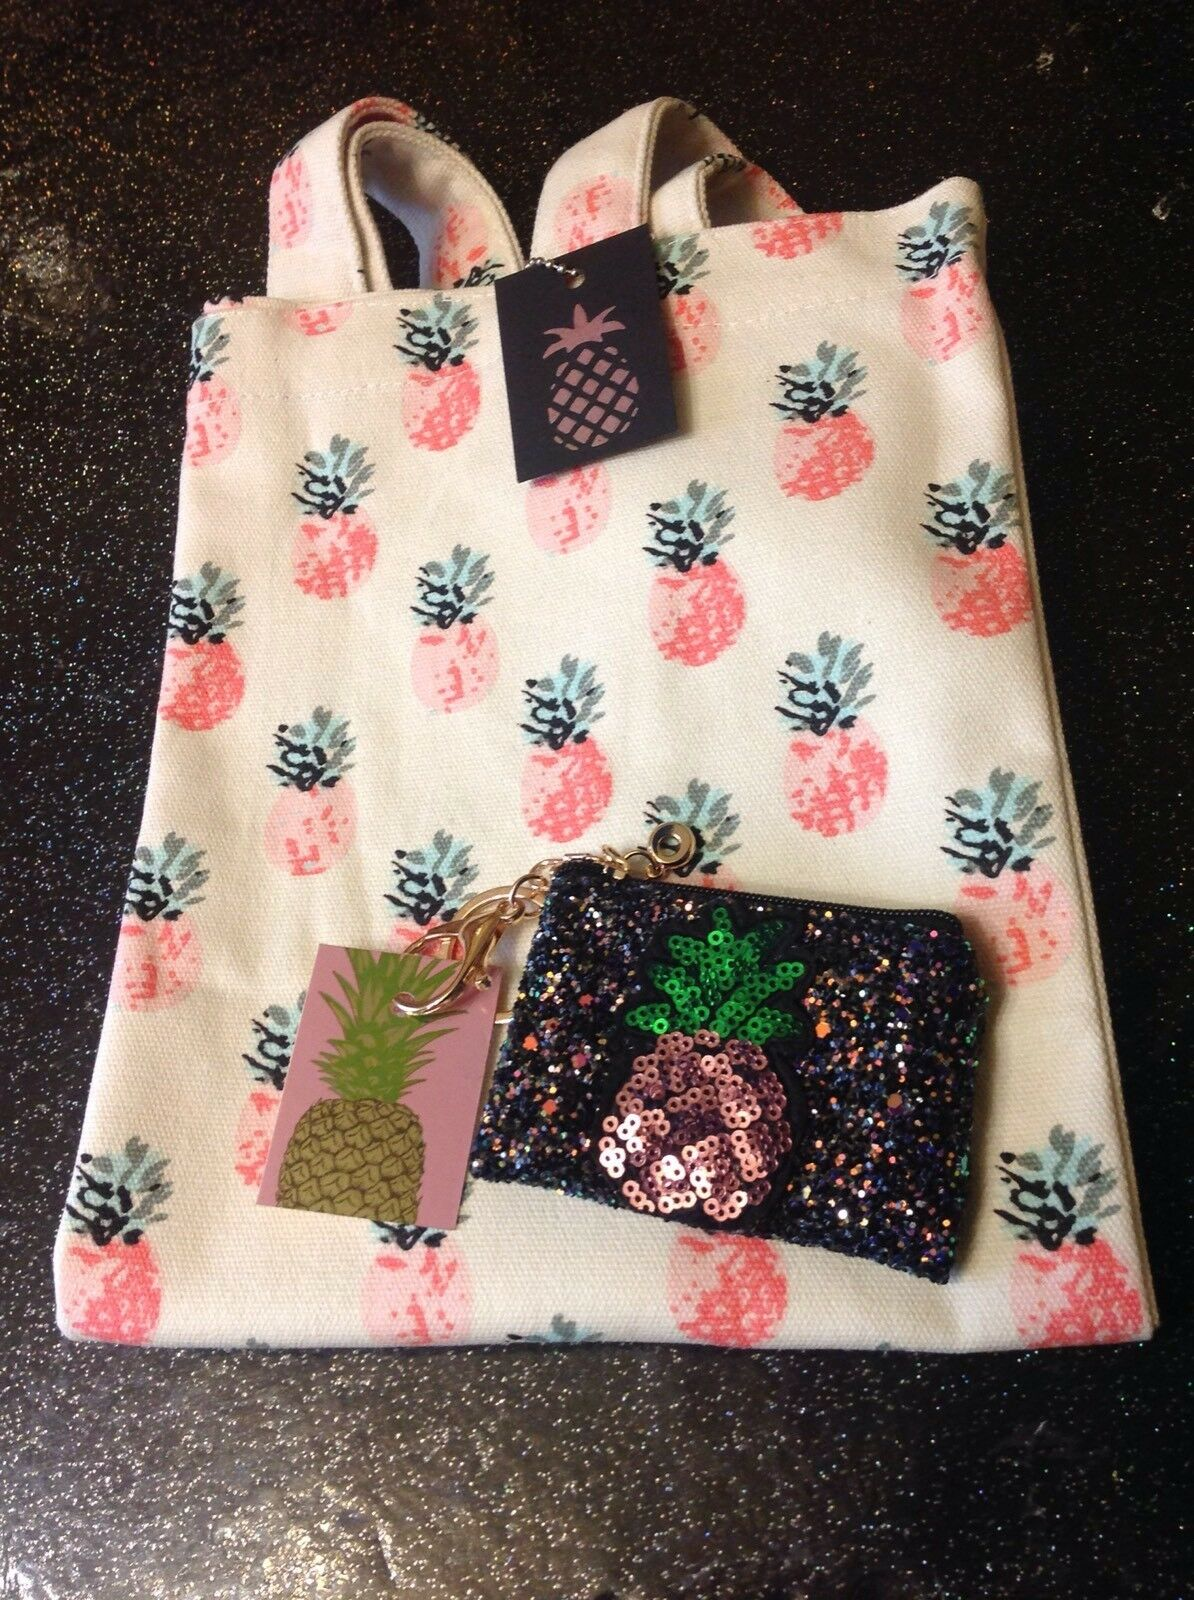 retro tiki pink🍍pineapple Canvas tote bag +Sequin Coin Purse 2 Piece Gift Set